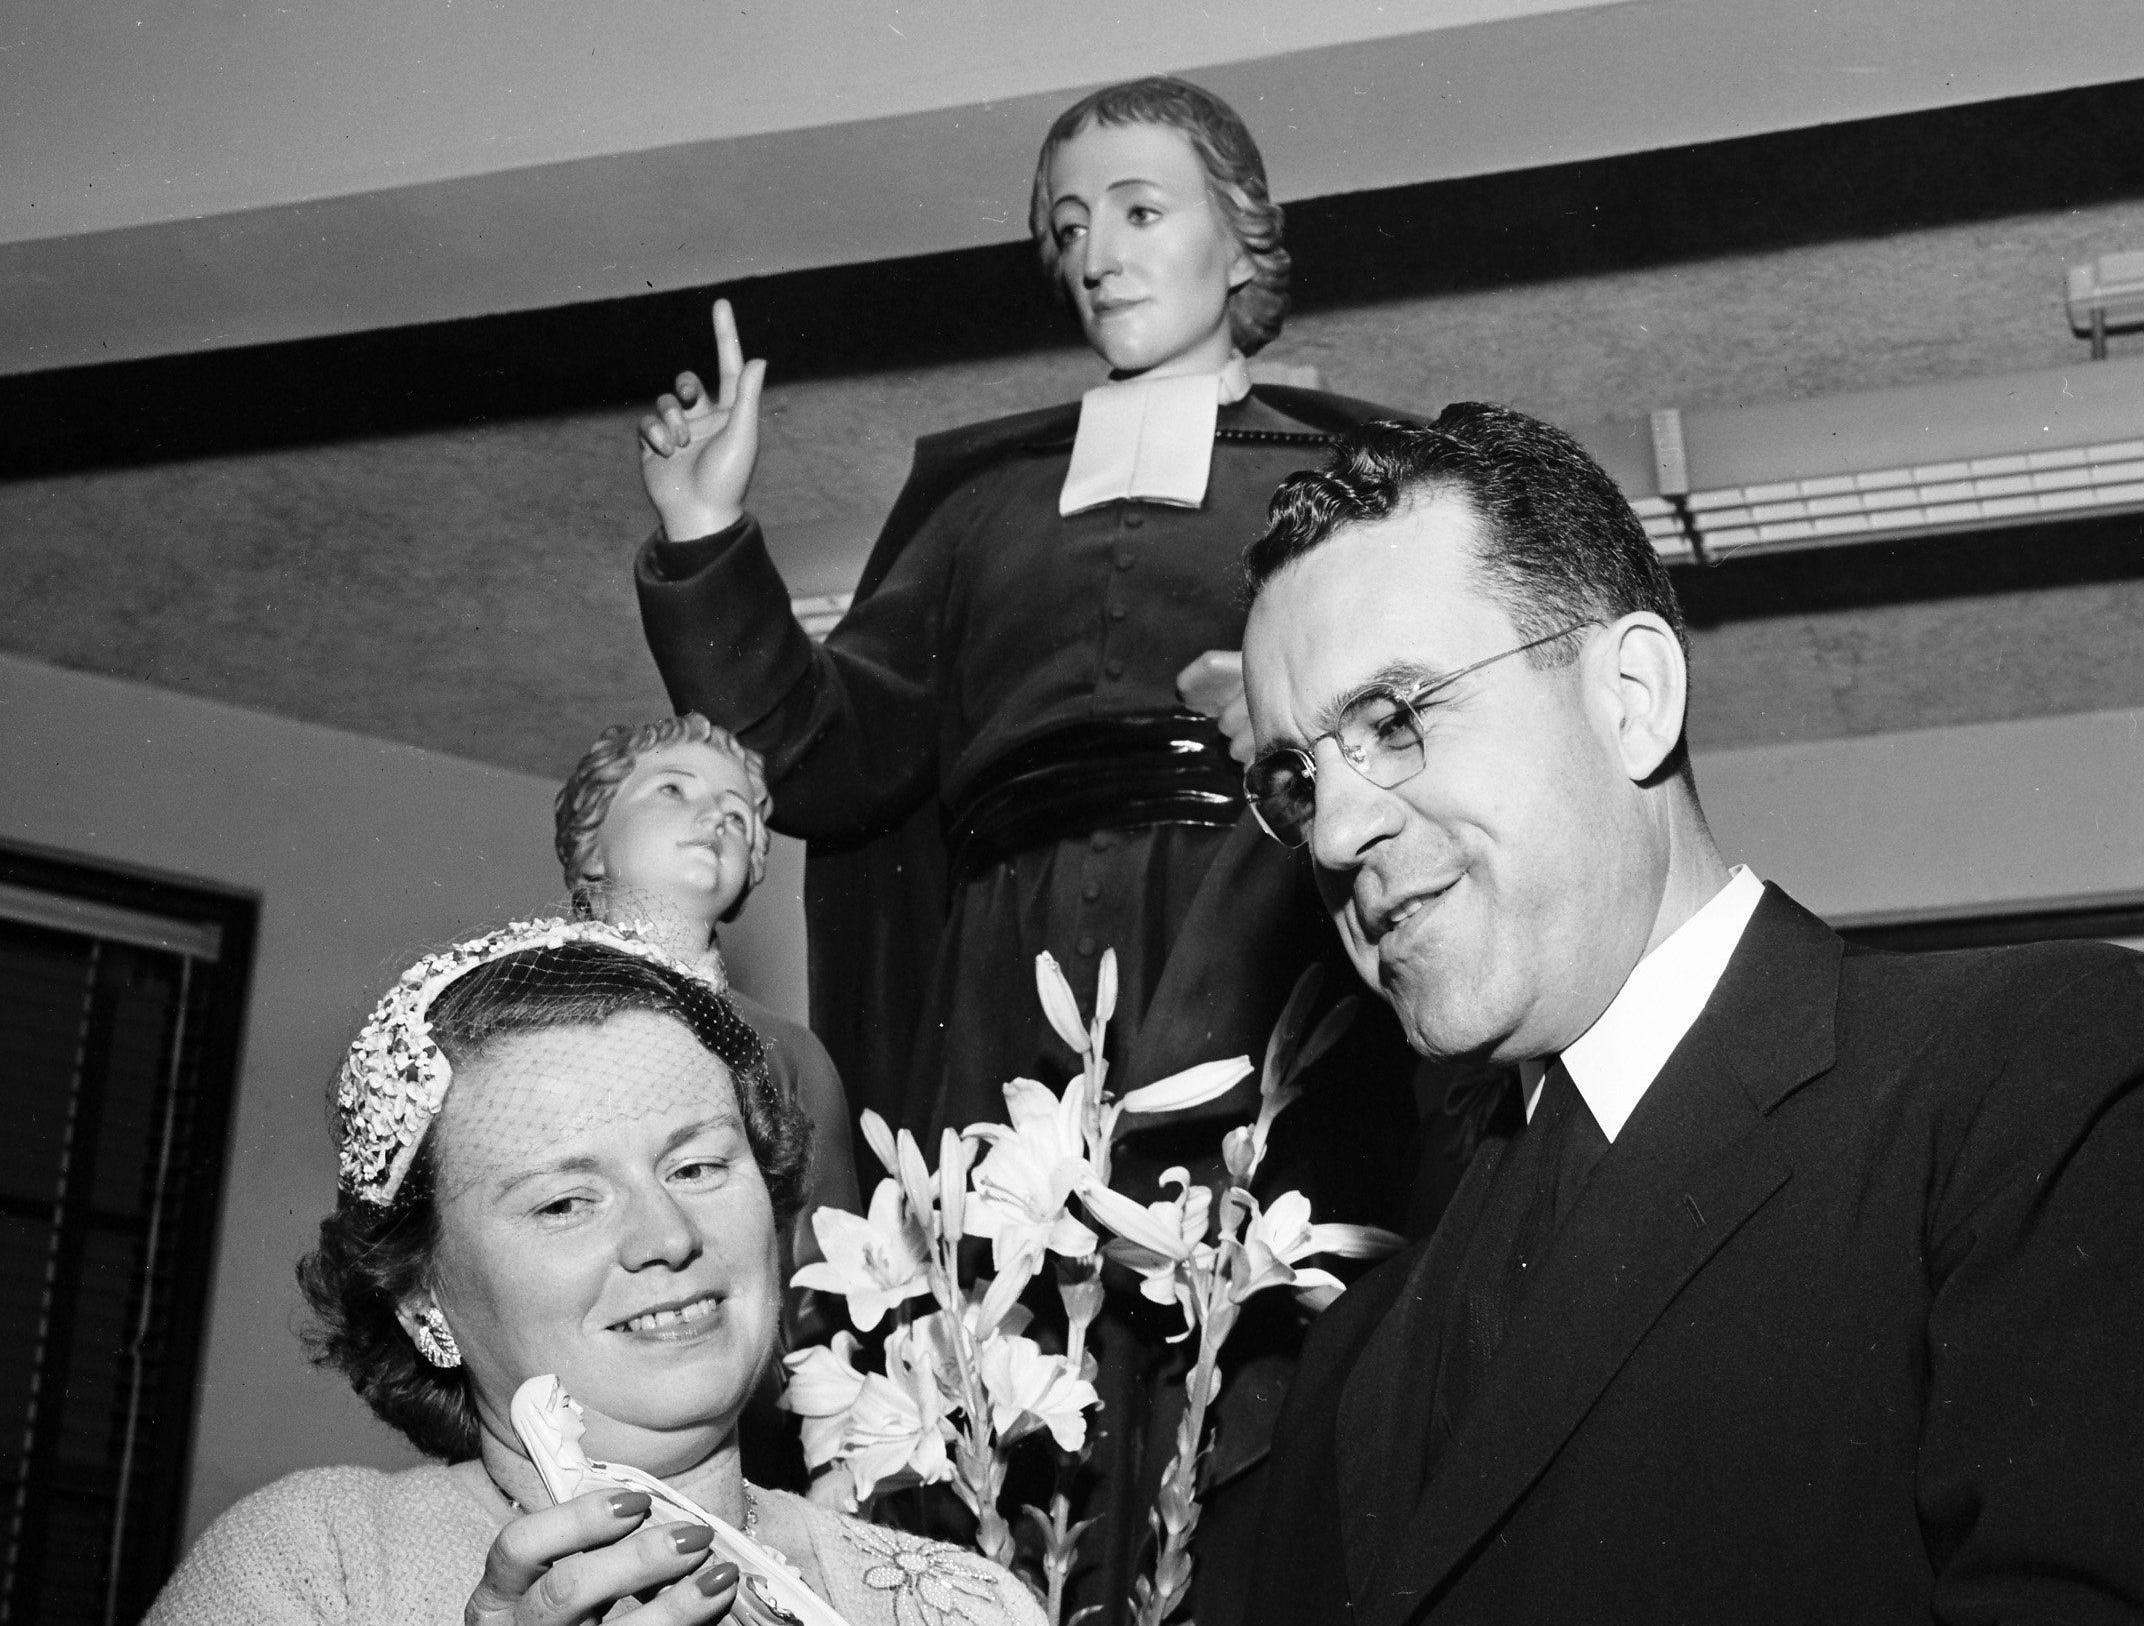 Brother H. Richard, retiring director of Christian Brothers College who served the maximum six-year term permitted by his order, was honored at a farewell reception in May 1953. Mrs. David Saxon, president of the CBC Mothers Club, presented him a small statue of the Virgin to take with him. A larger statue of the Virgin soon will be installed at the school in his honor. The statue in the background is of St. John Baptist de la Salle, founder of the Christian Brothers order.